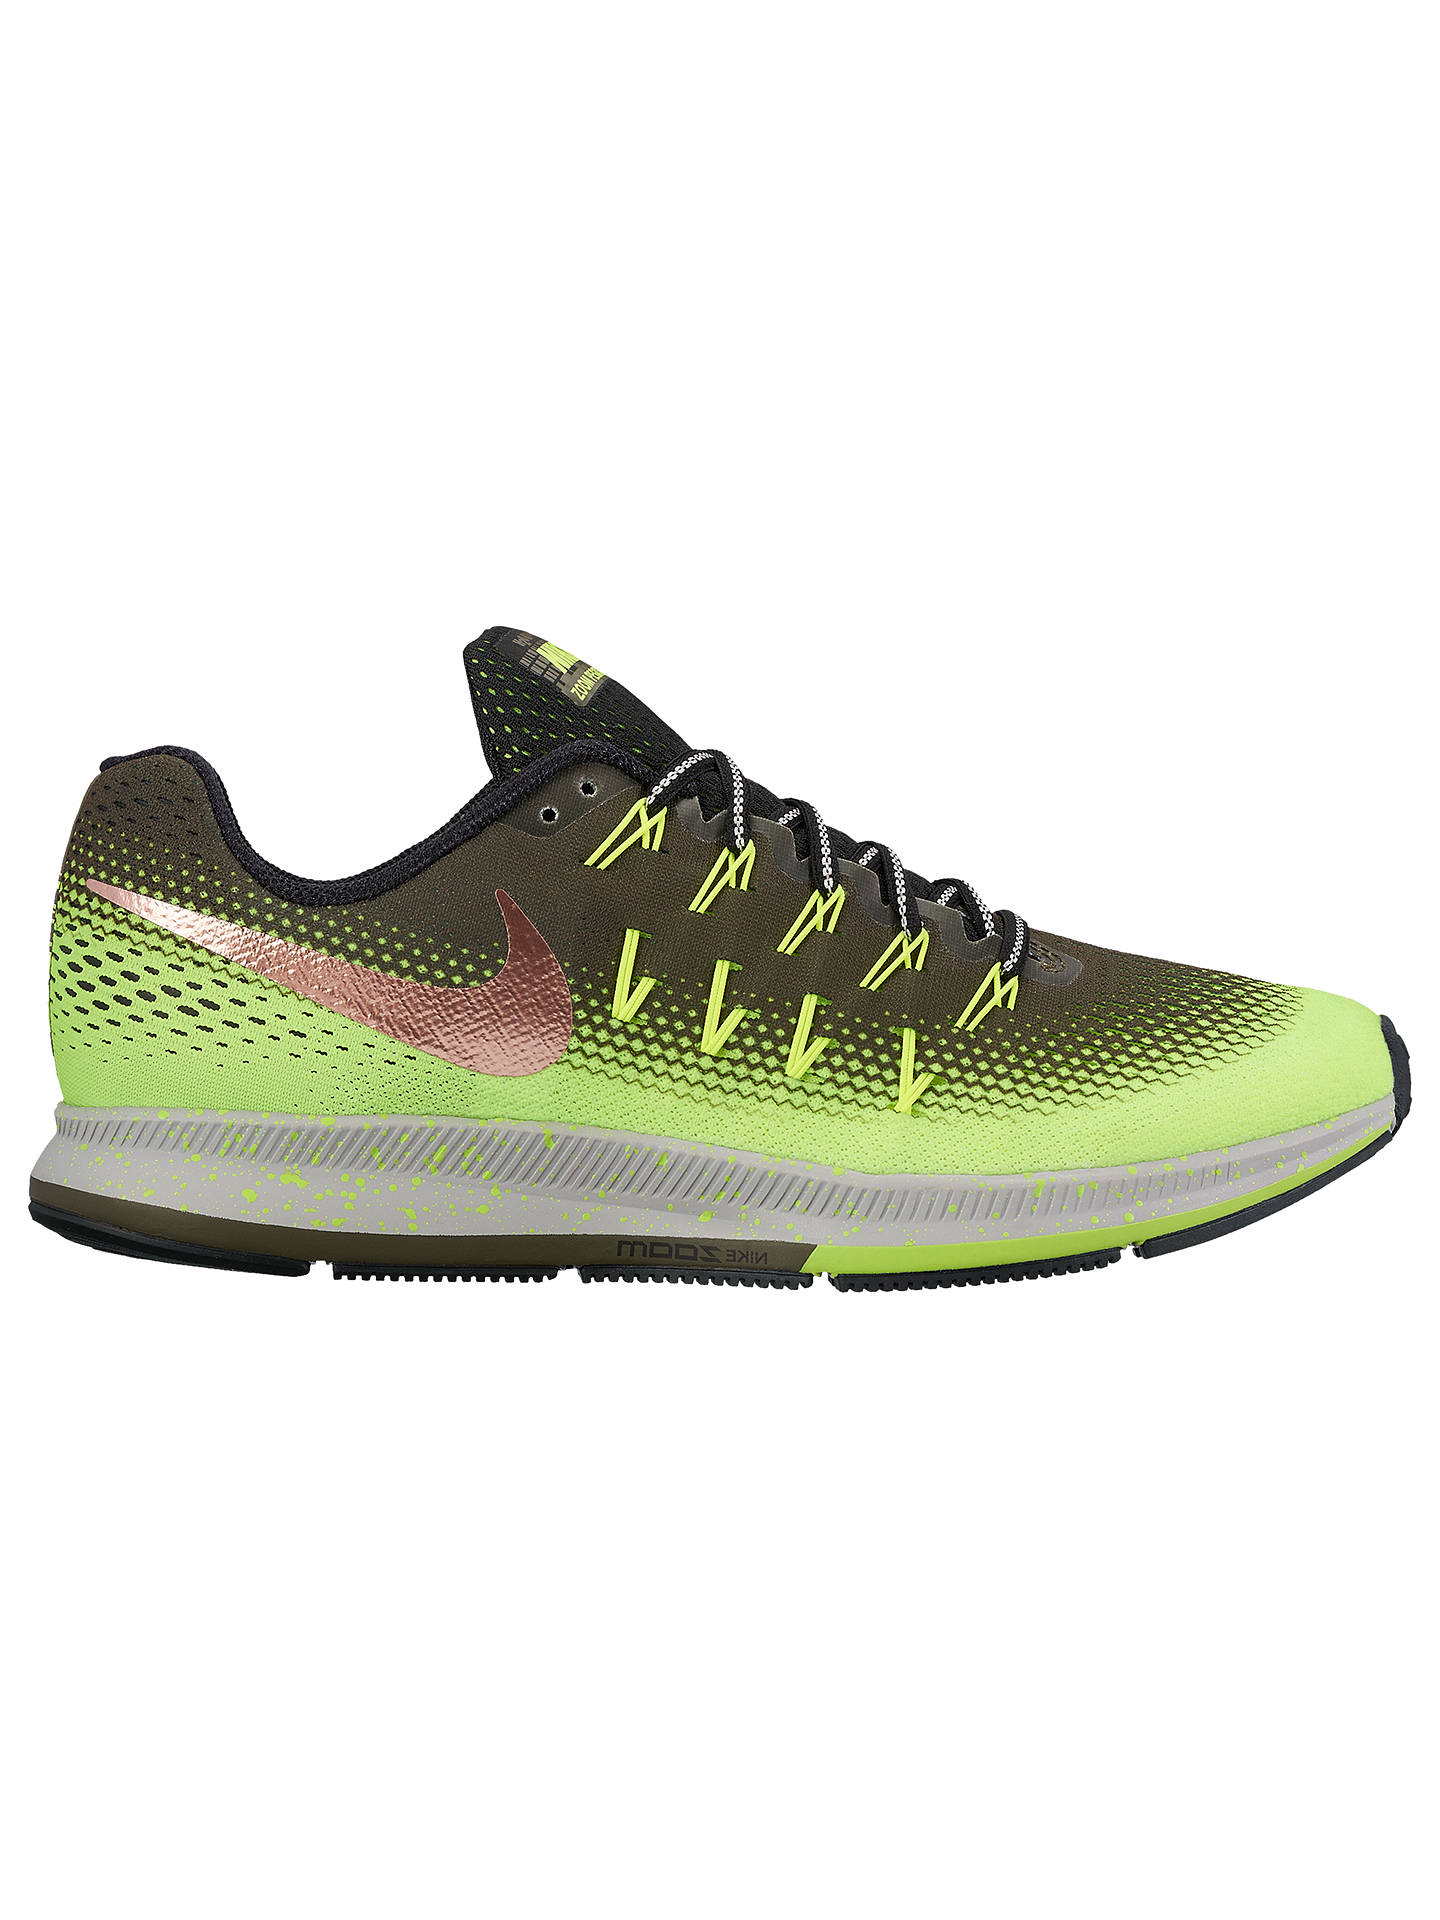 new products a2e6f e083d Nike Air Zoom Pegasus 33 Shield Men's Running Shoes, Cargo ...